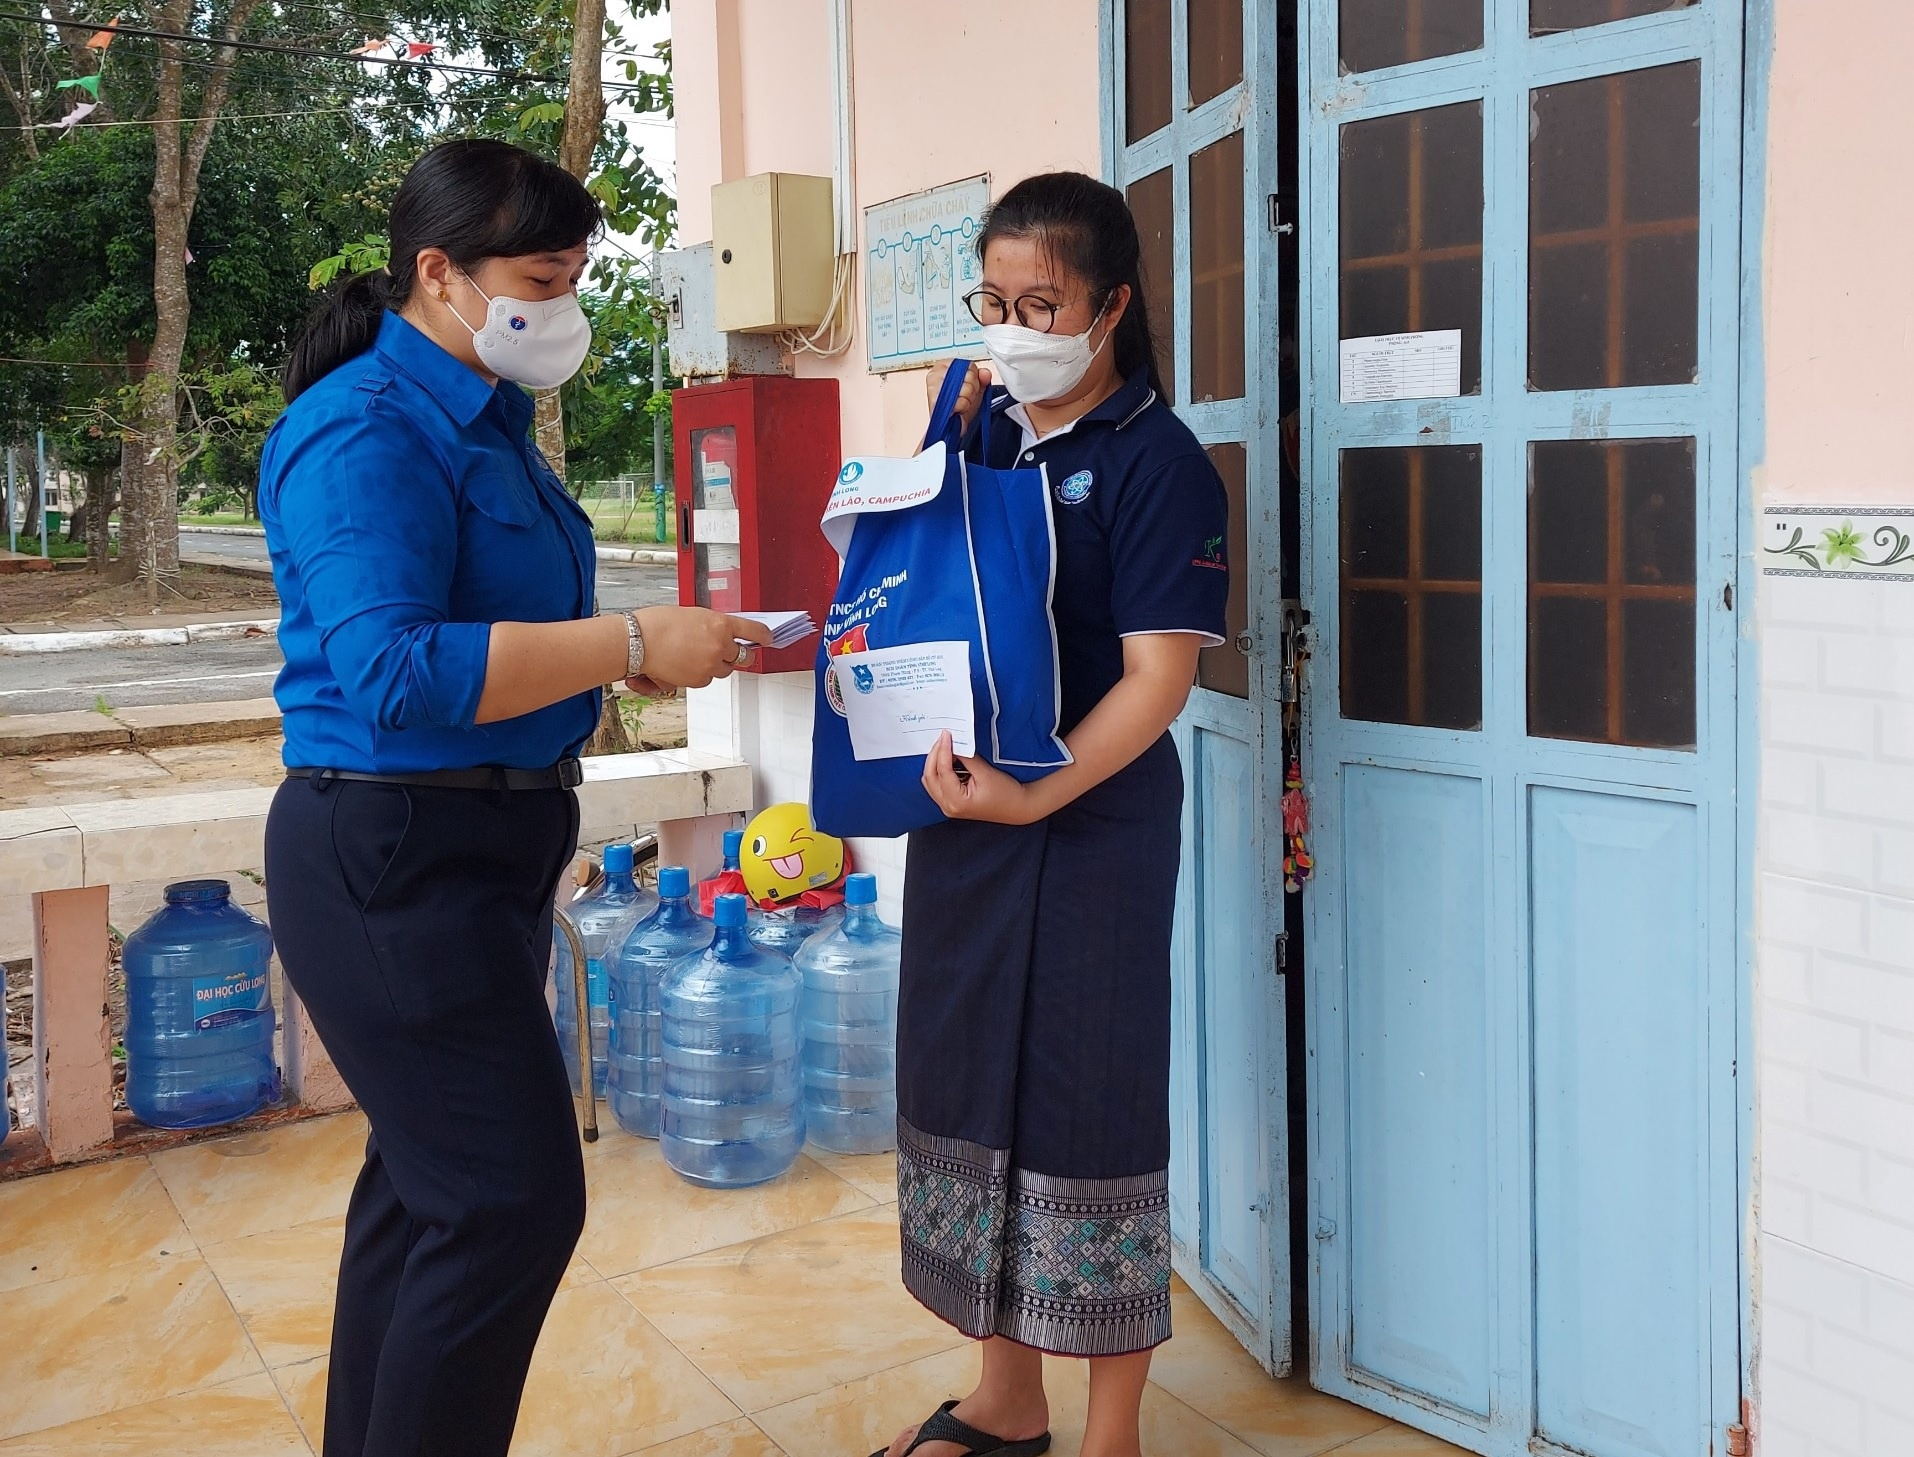 Kind Gestures Shown by People During Covid Pandemic